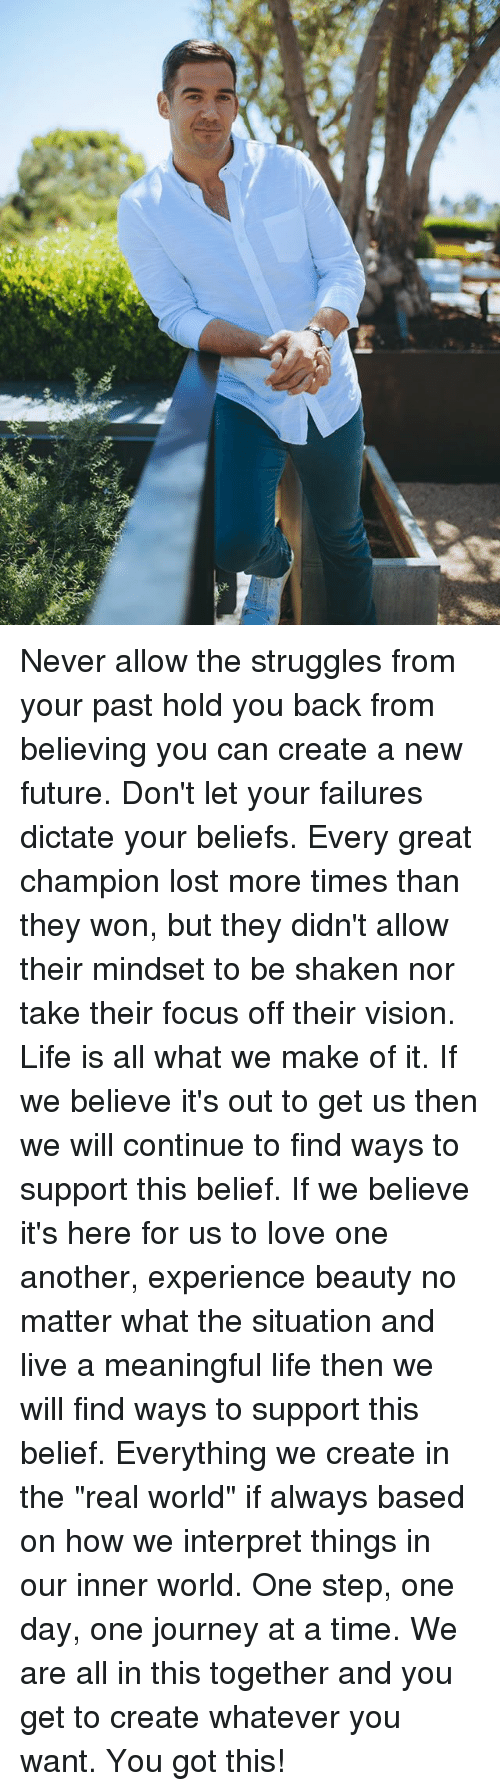 """Future, Journey, and Life: Never allow the struggles from your past hold you back from believing you can create a new future. Don't let your failures dictate your beliefs. Every great champion lost more times than they won, but they didn't allow their mindset to be shaken nor take their focus off their vision. Life is all what we make of it. If we believe it's out to get us then we will continue to find ways to support this belief. If we believe it's here for us to love one another, experience beauty no matter what the situation and live a meaningful life then we will find ways to support this belief. Everything we create in the """"real world"""" if always based on how we interpret things in our inner world. One step, one day, one journey at a time. We are all in this together and you get to create whatever you want. You got this!"""